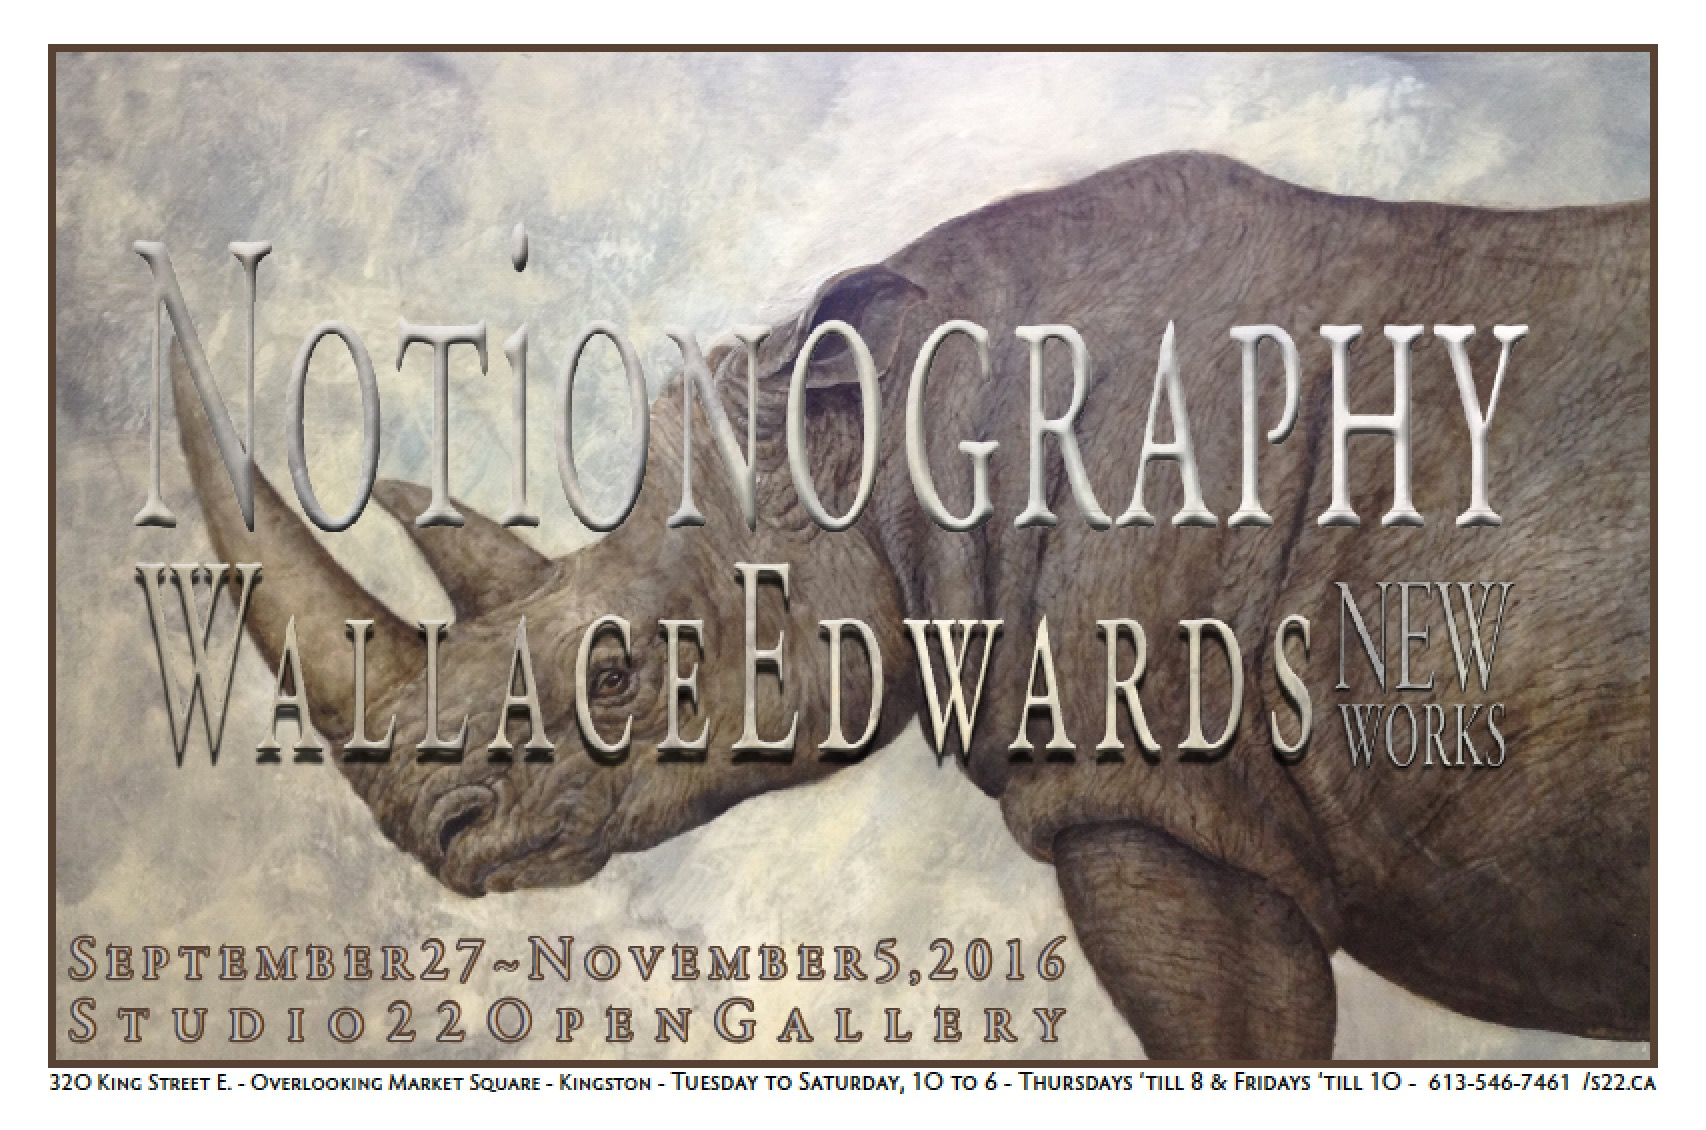 Notionography – New Works by Wallace Edwards